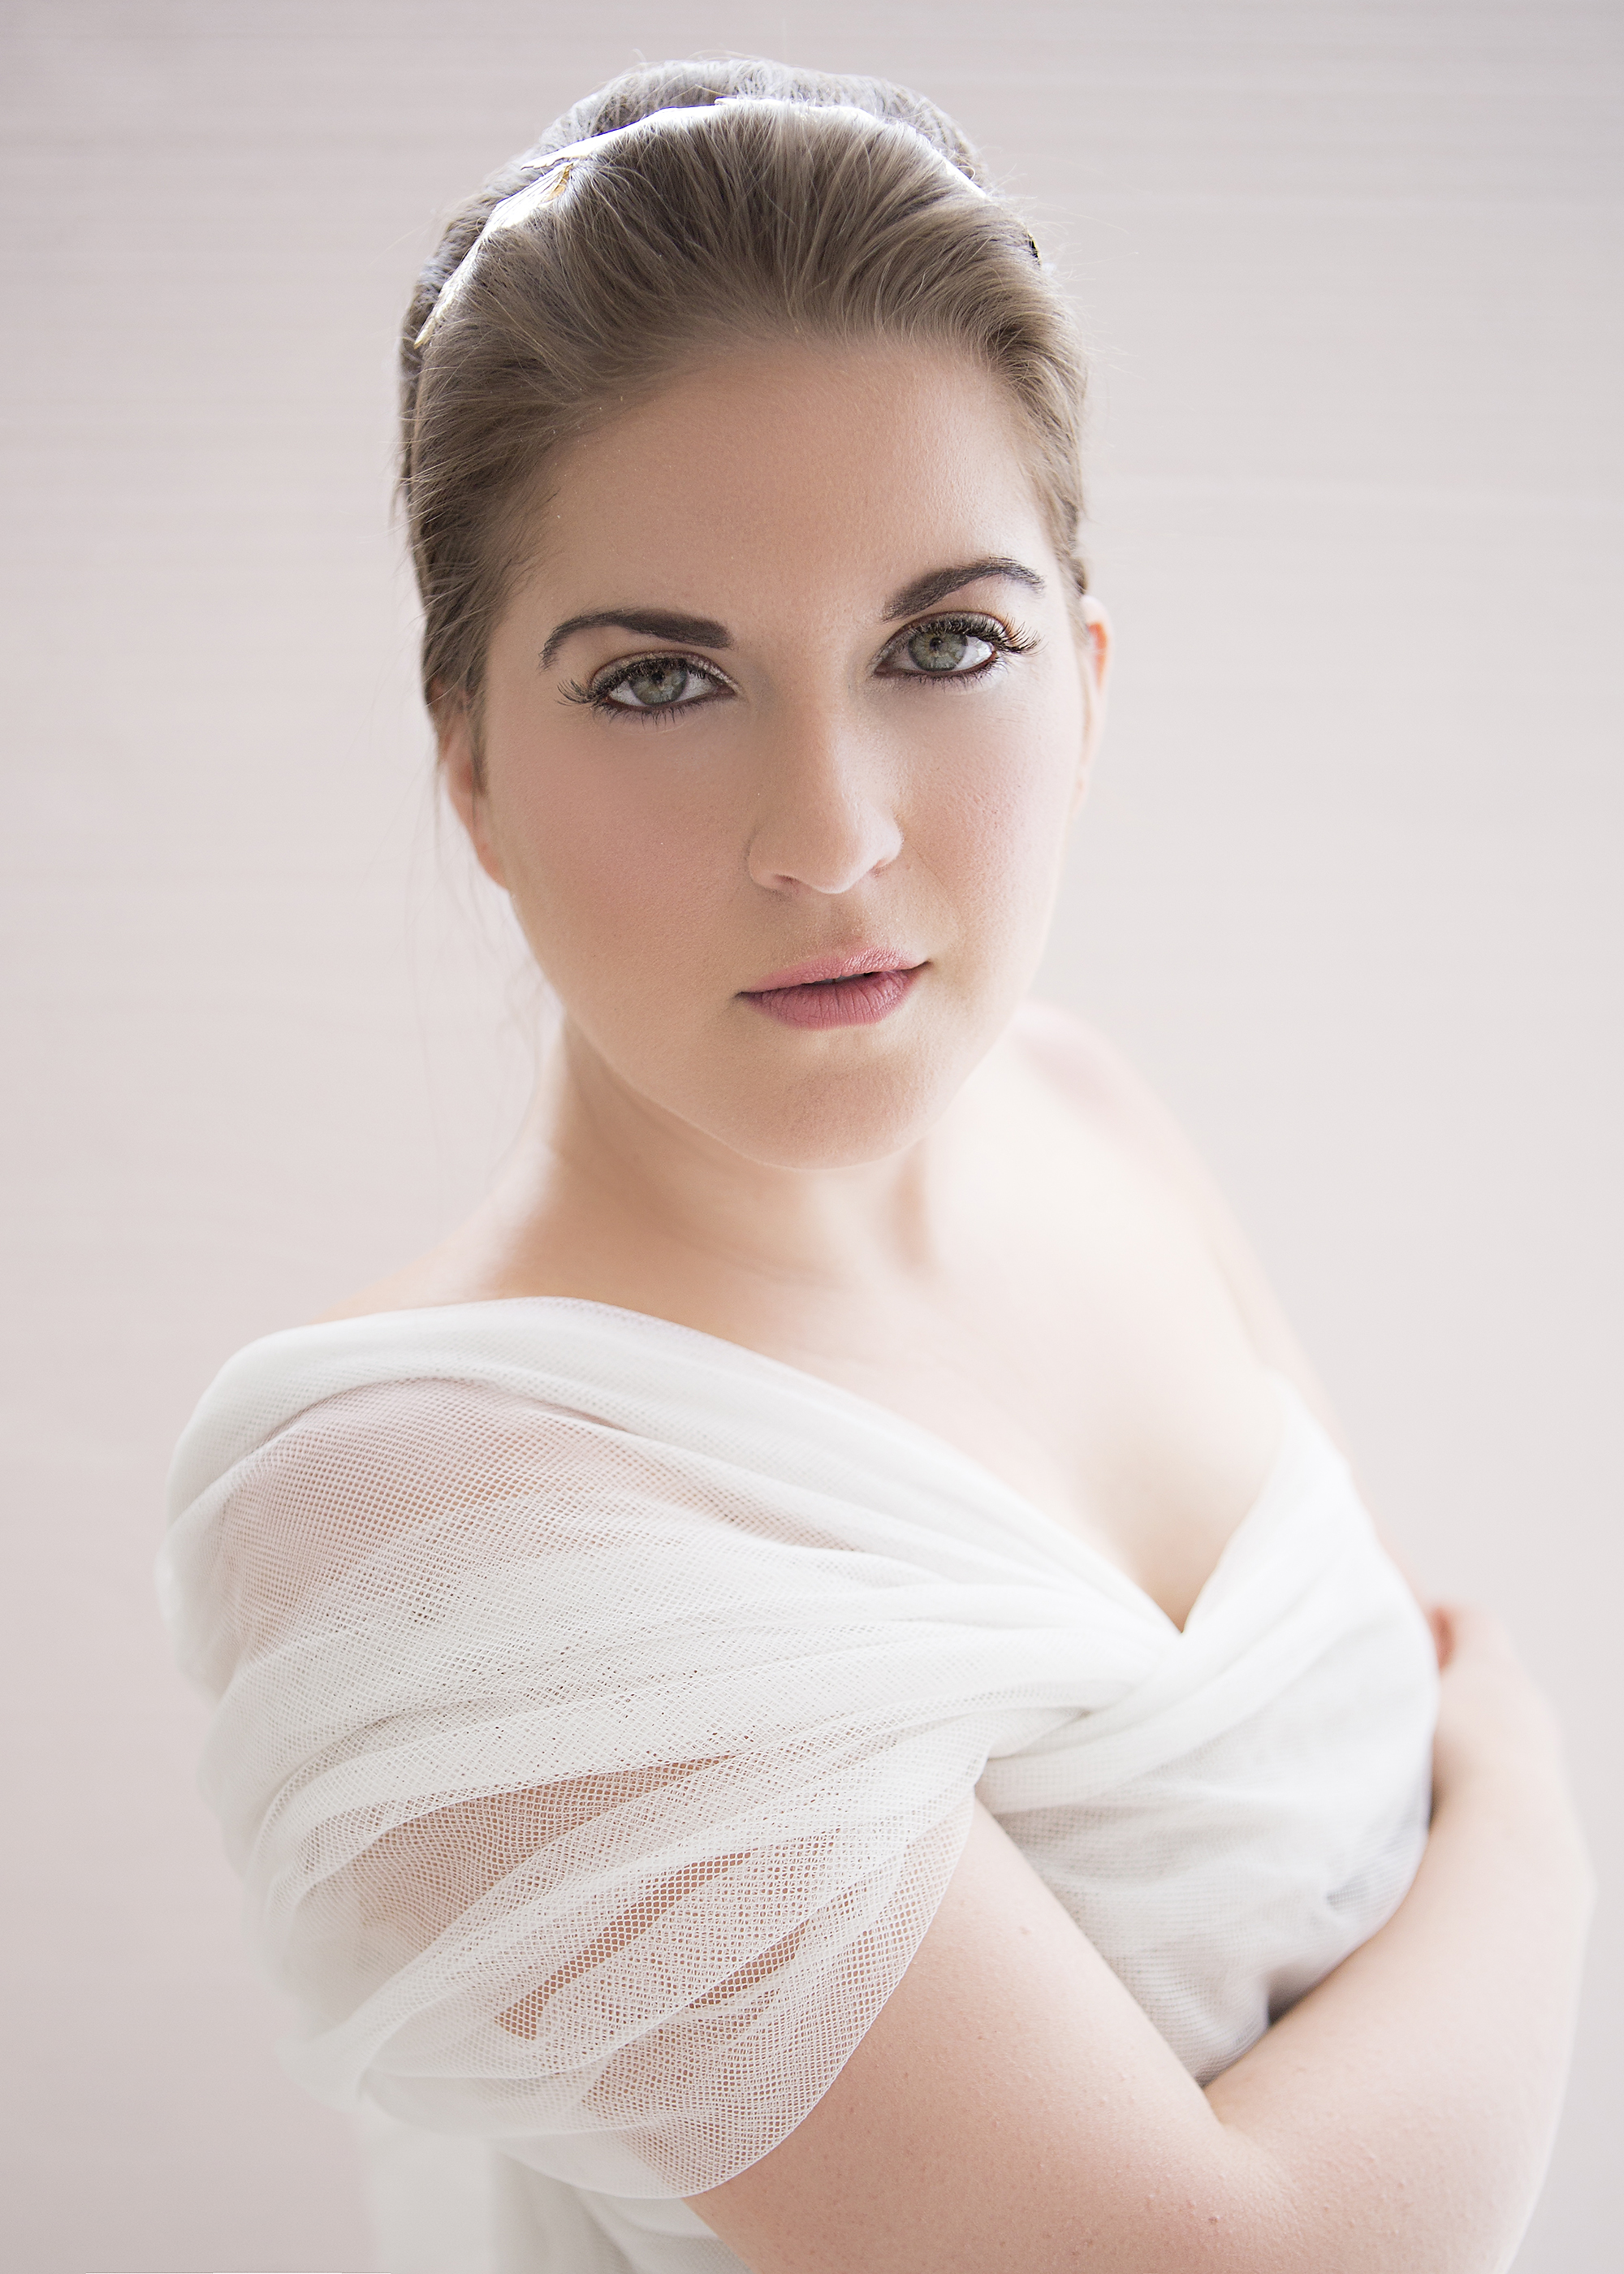 Those eyes, though! Beauty portrait with tulle by Lavish Boudoir™